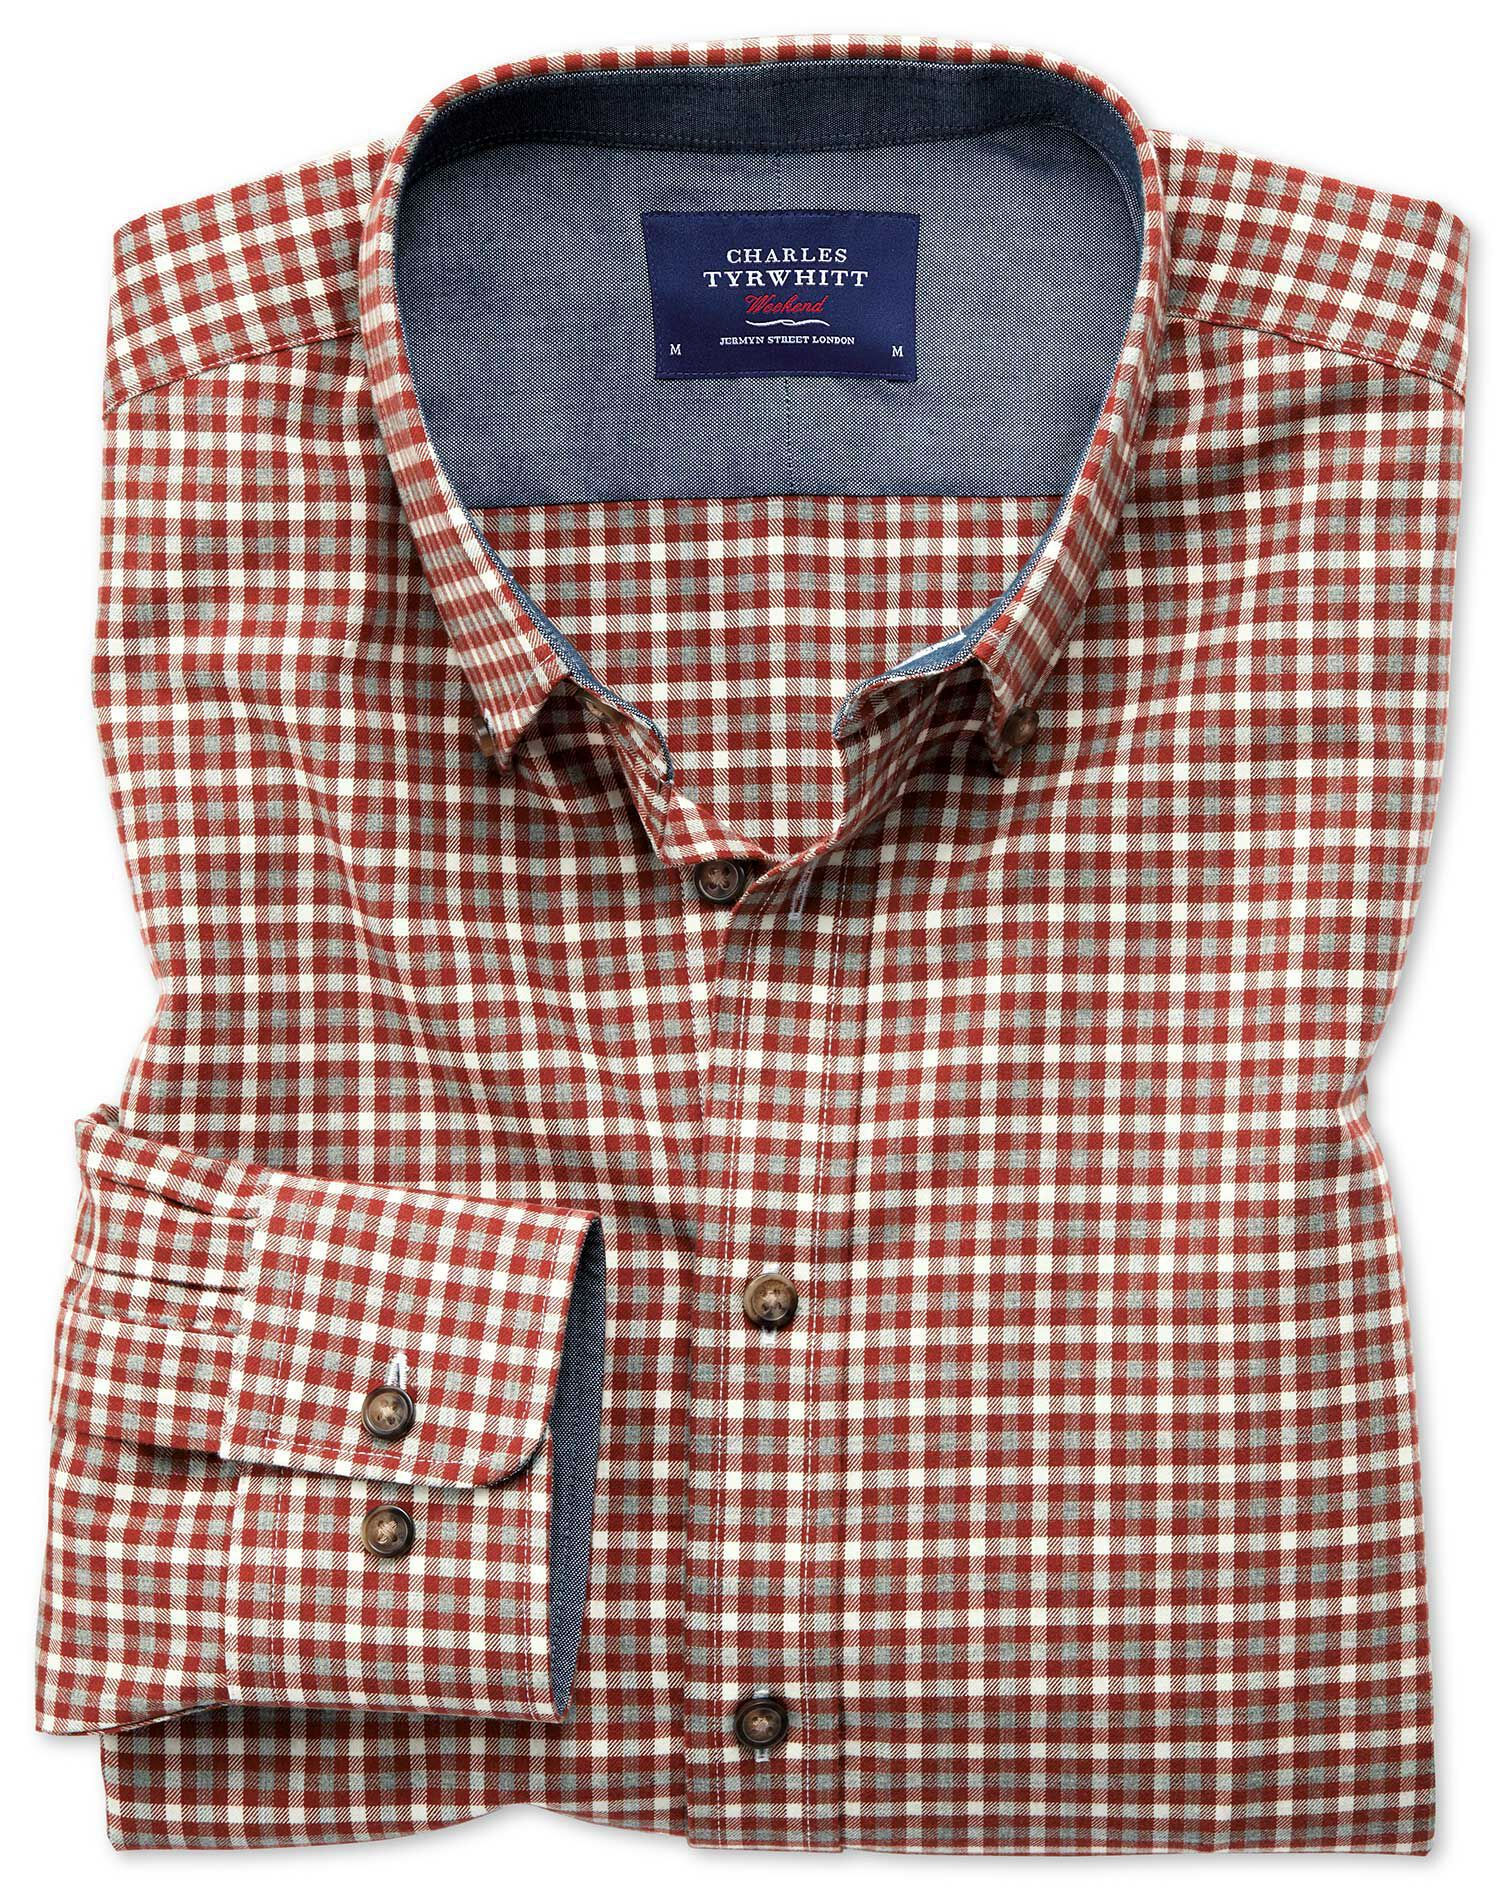 Classic Fit Button-Down Soft Cotton Rust Multi Check Shirt Single Cuff Size XXL by Charles Tyrwhitt